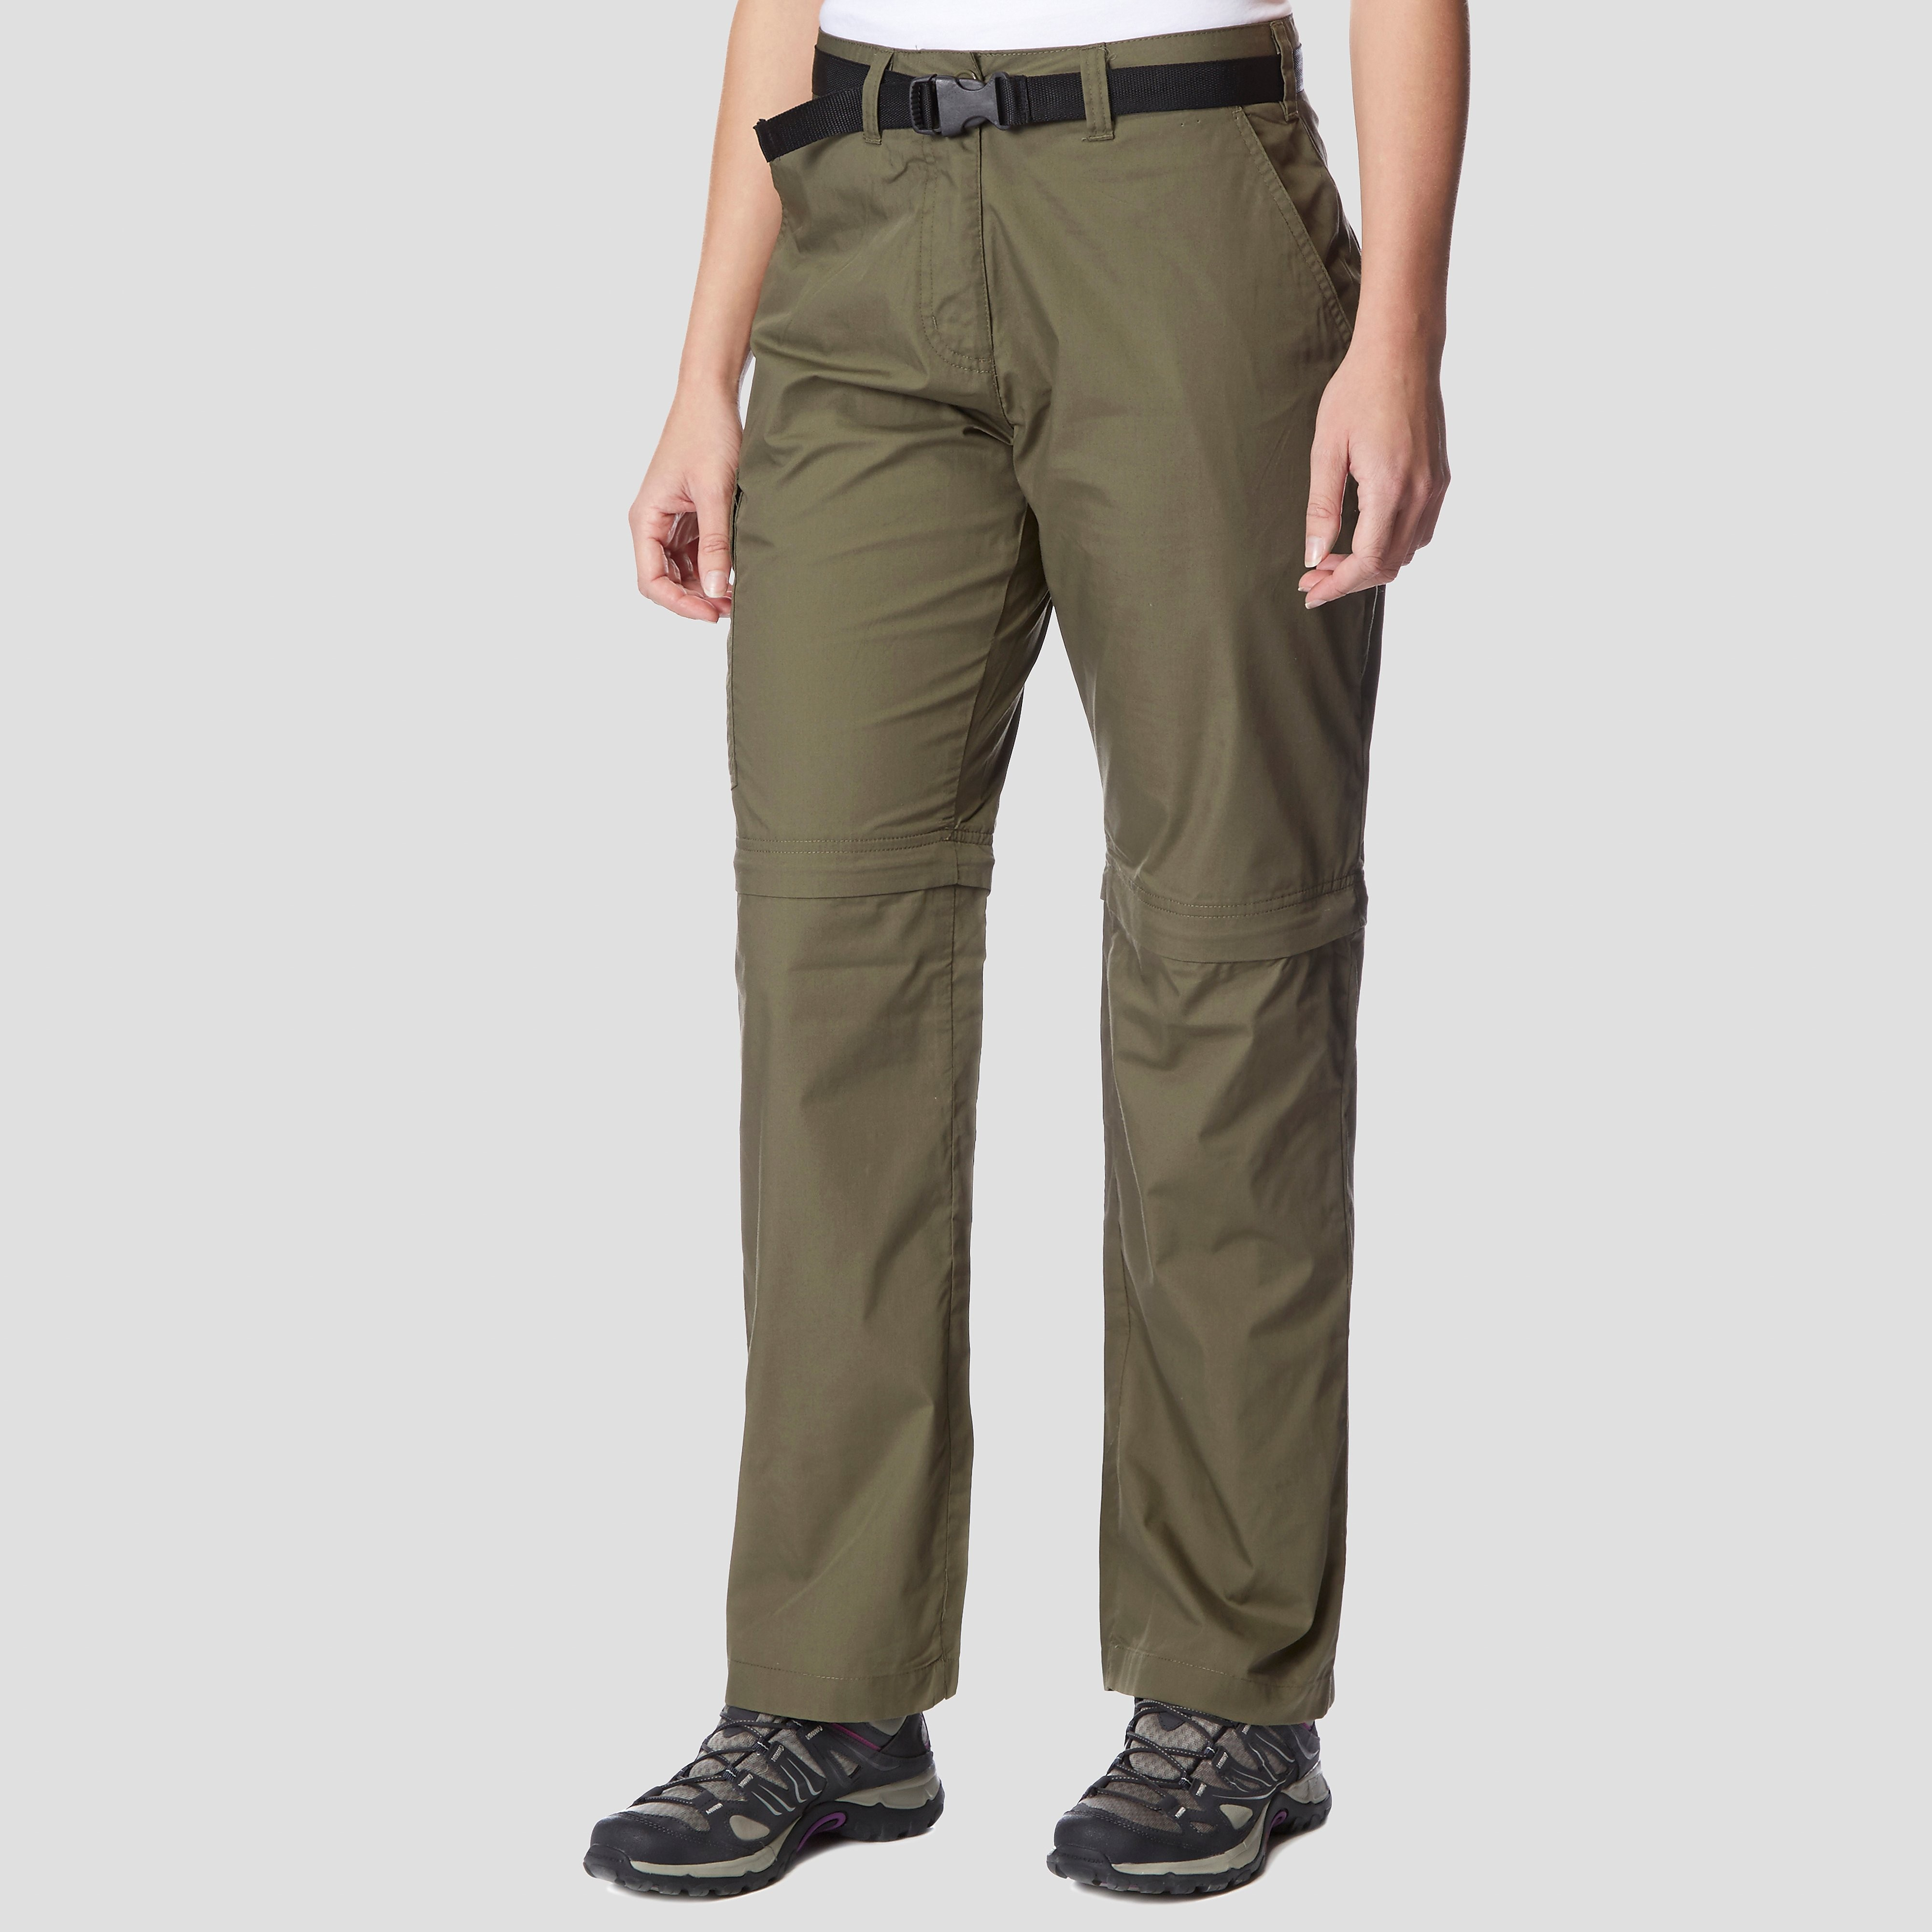 PETER STORM Women's Convertible Walking Trousers